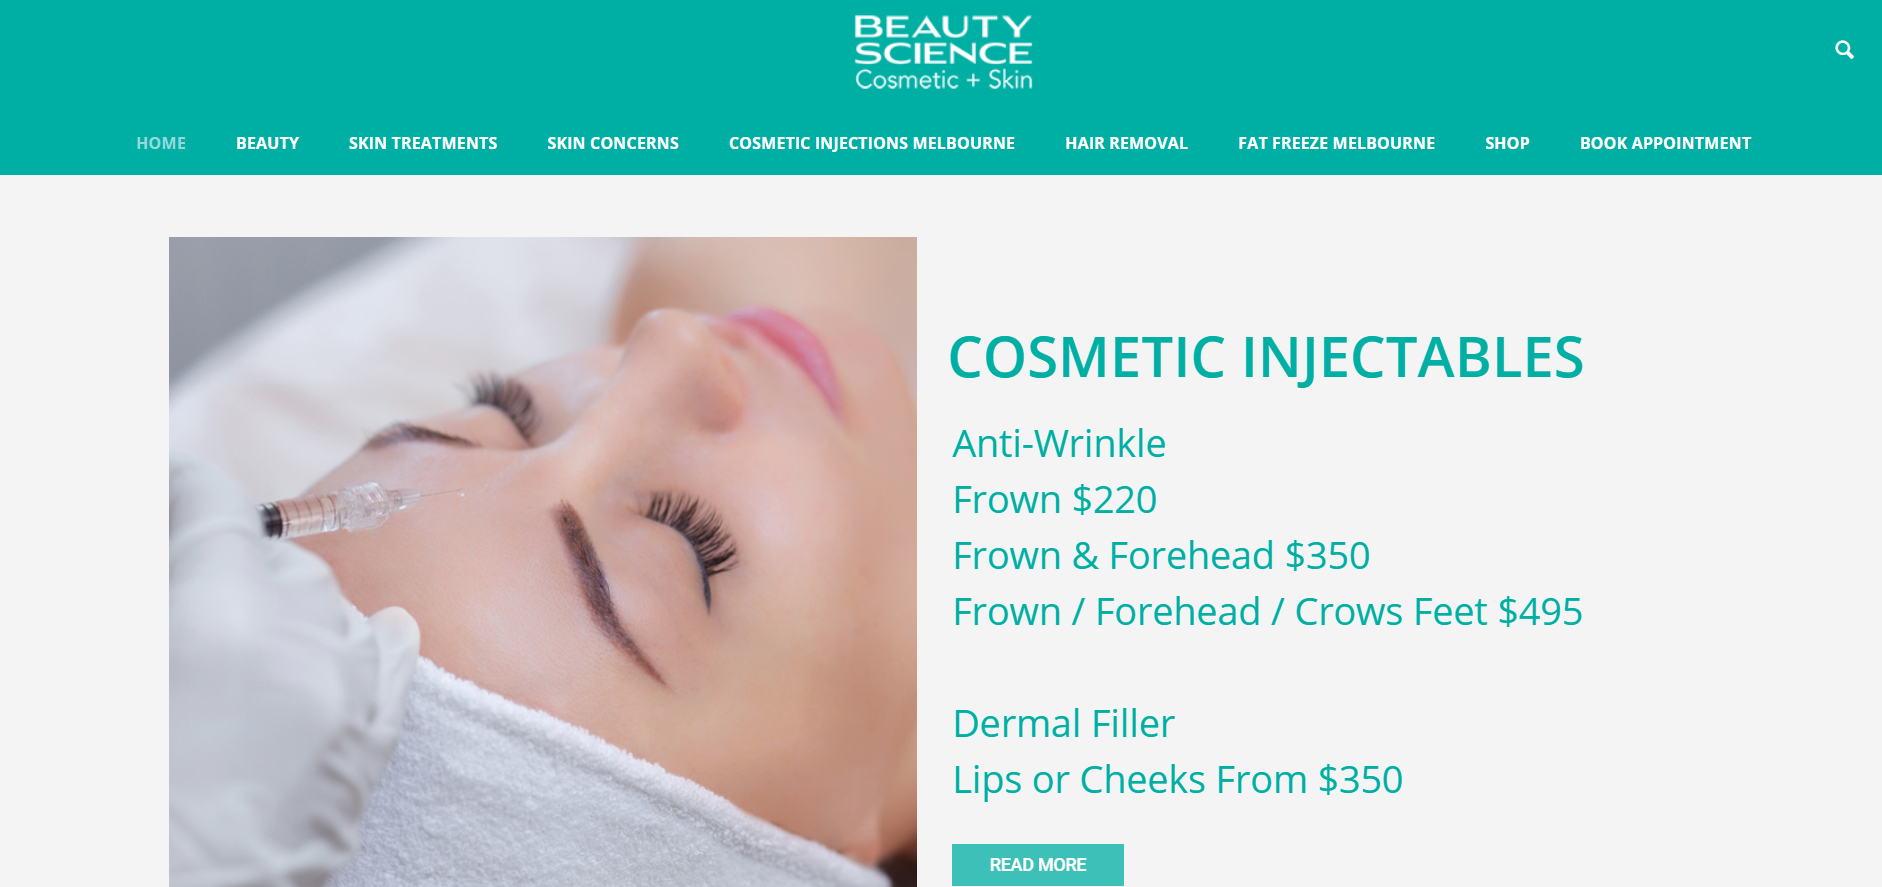 Beauty Science Cosmetic + Skin Melbourne